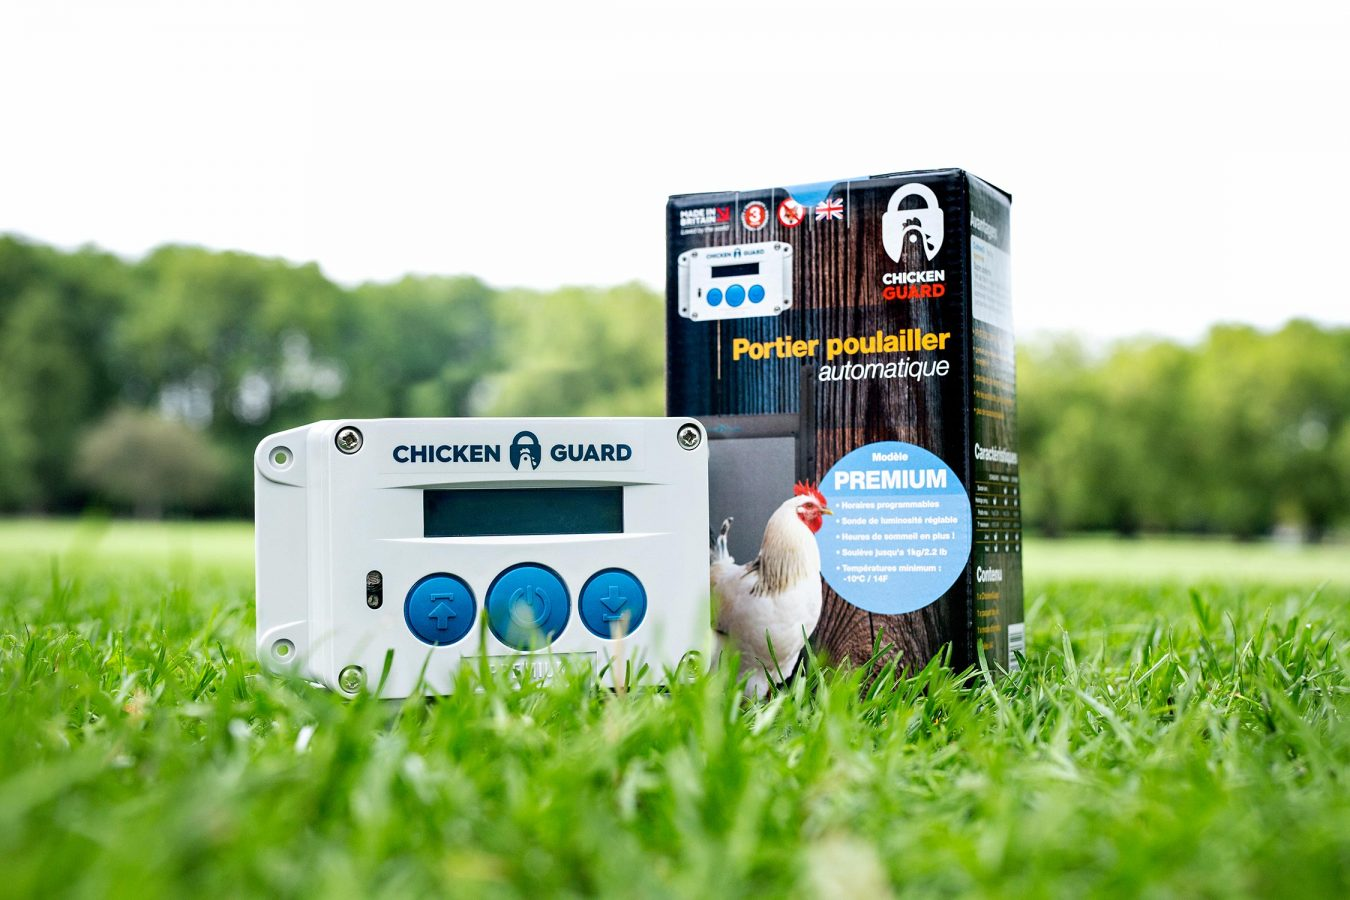 location-product-photography-for-chicken-guard